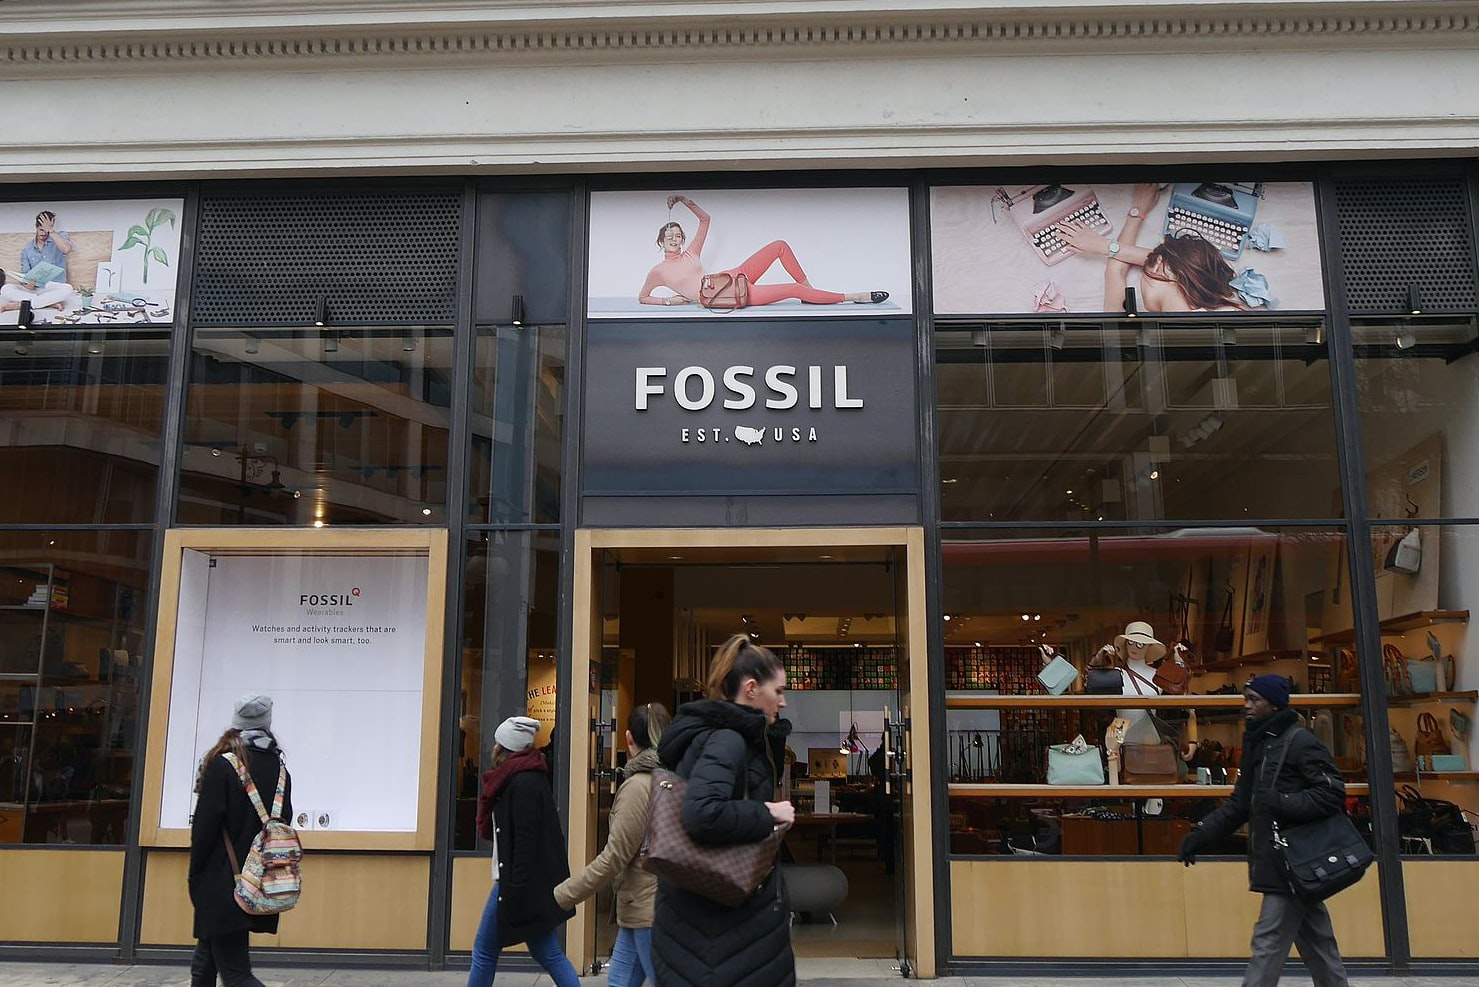 Business News: Smartwatches Are Both A Blessing And A Curse For Fossil Business News: Smartwatches Are Both A Blessing And A Curse For Fossil Fossil store Oxford Street London March 2016 01